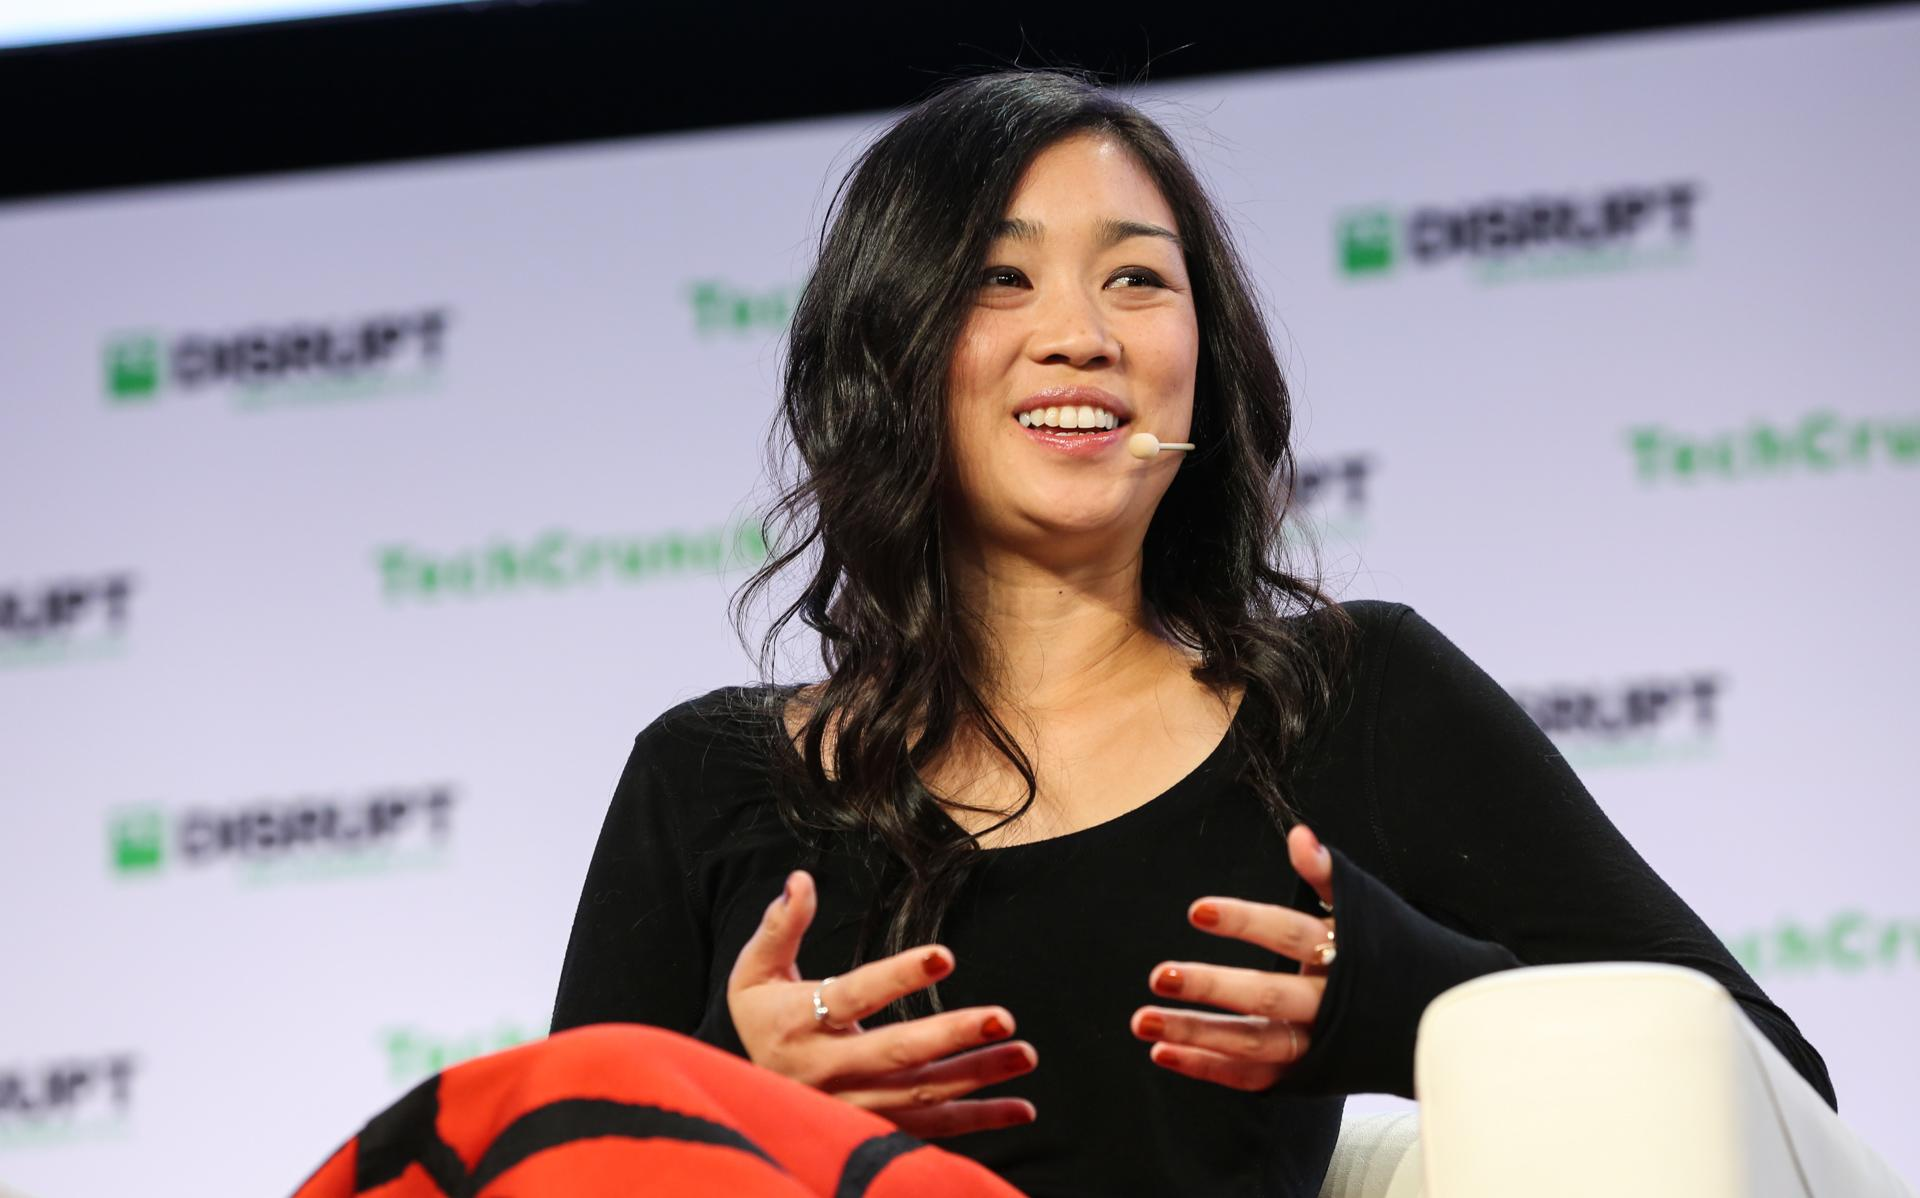 Tracy Chou launches Block Party to combat online harassment and abuse